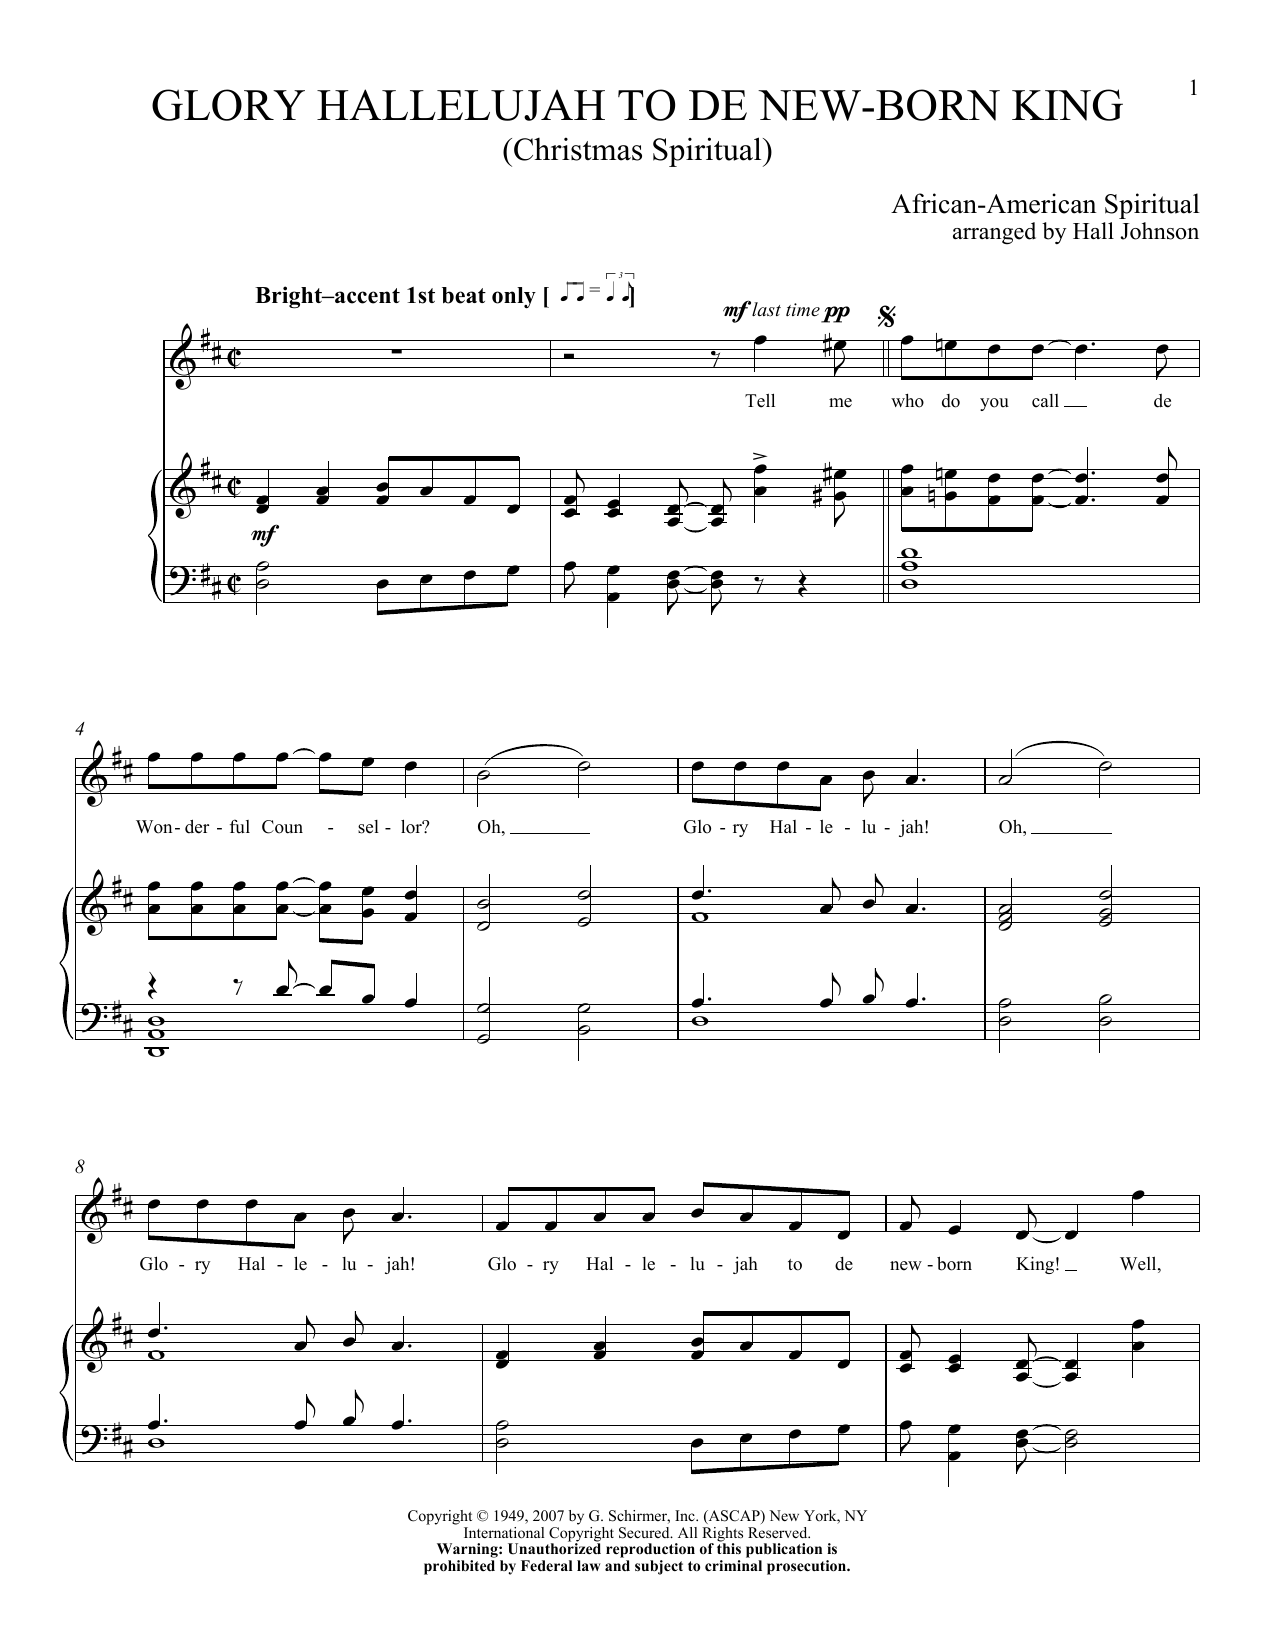 Glory Hallelujah To De New-born King Sheet Music